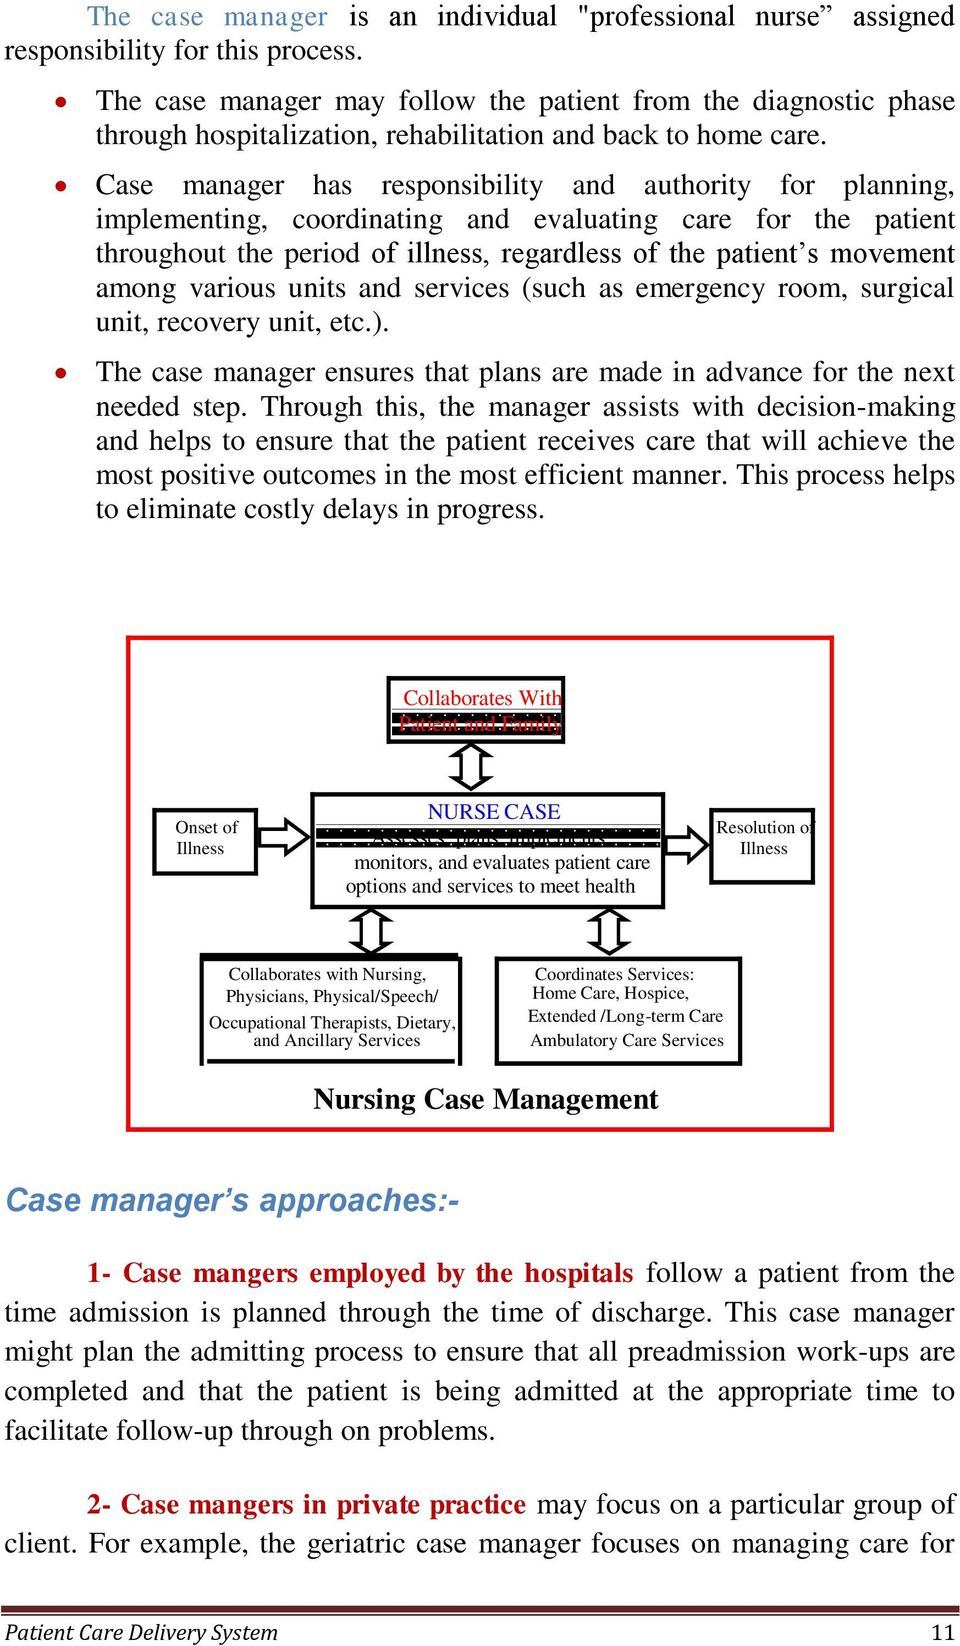 Case manager has responsibility and authority for planning, implementing, coordinating and evaluating care for the patient throughout the period of illness, regardless of the patient s movement among